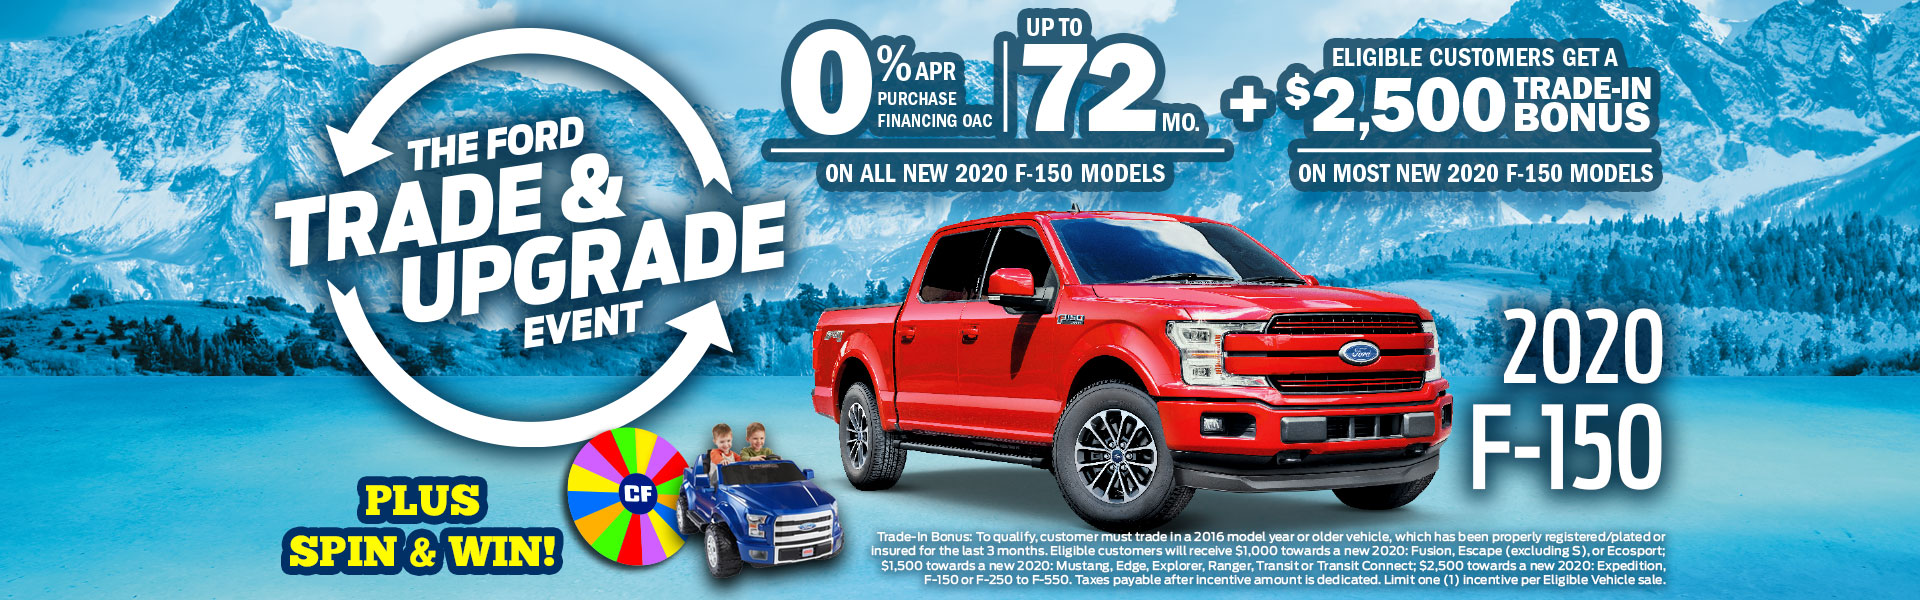 Ford Trade & Upgrade Event F-150 Sale